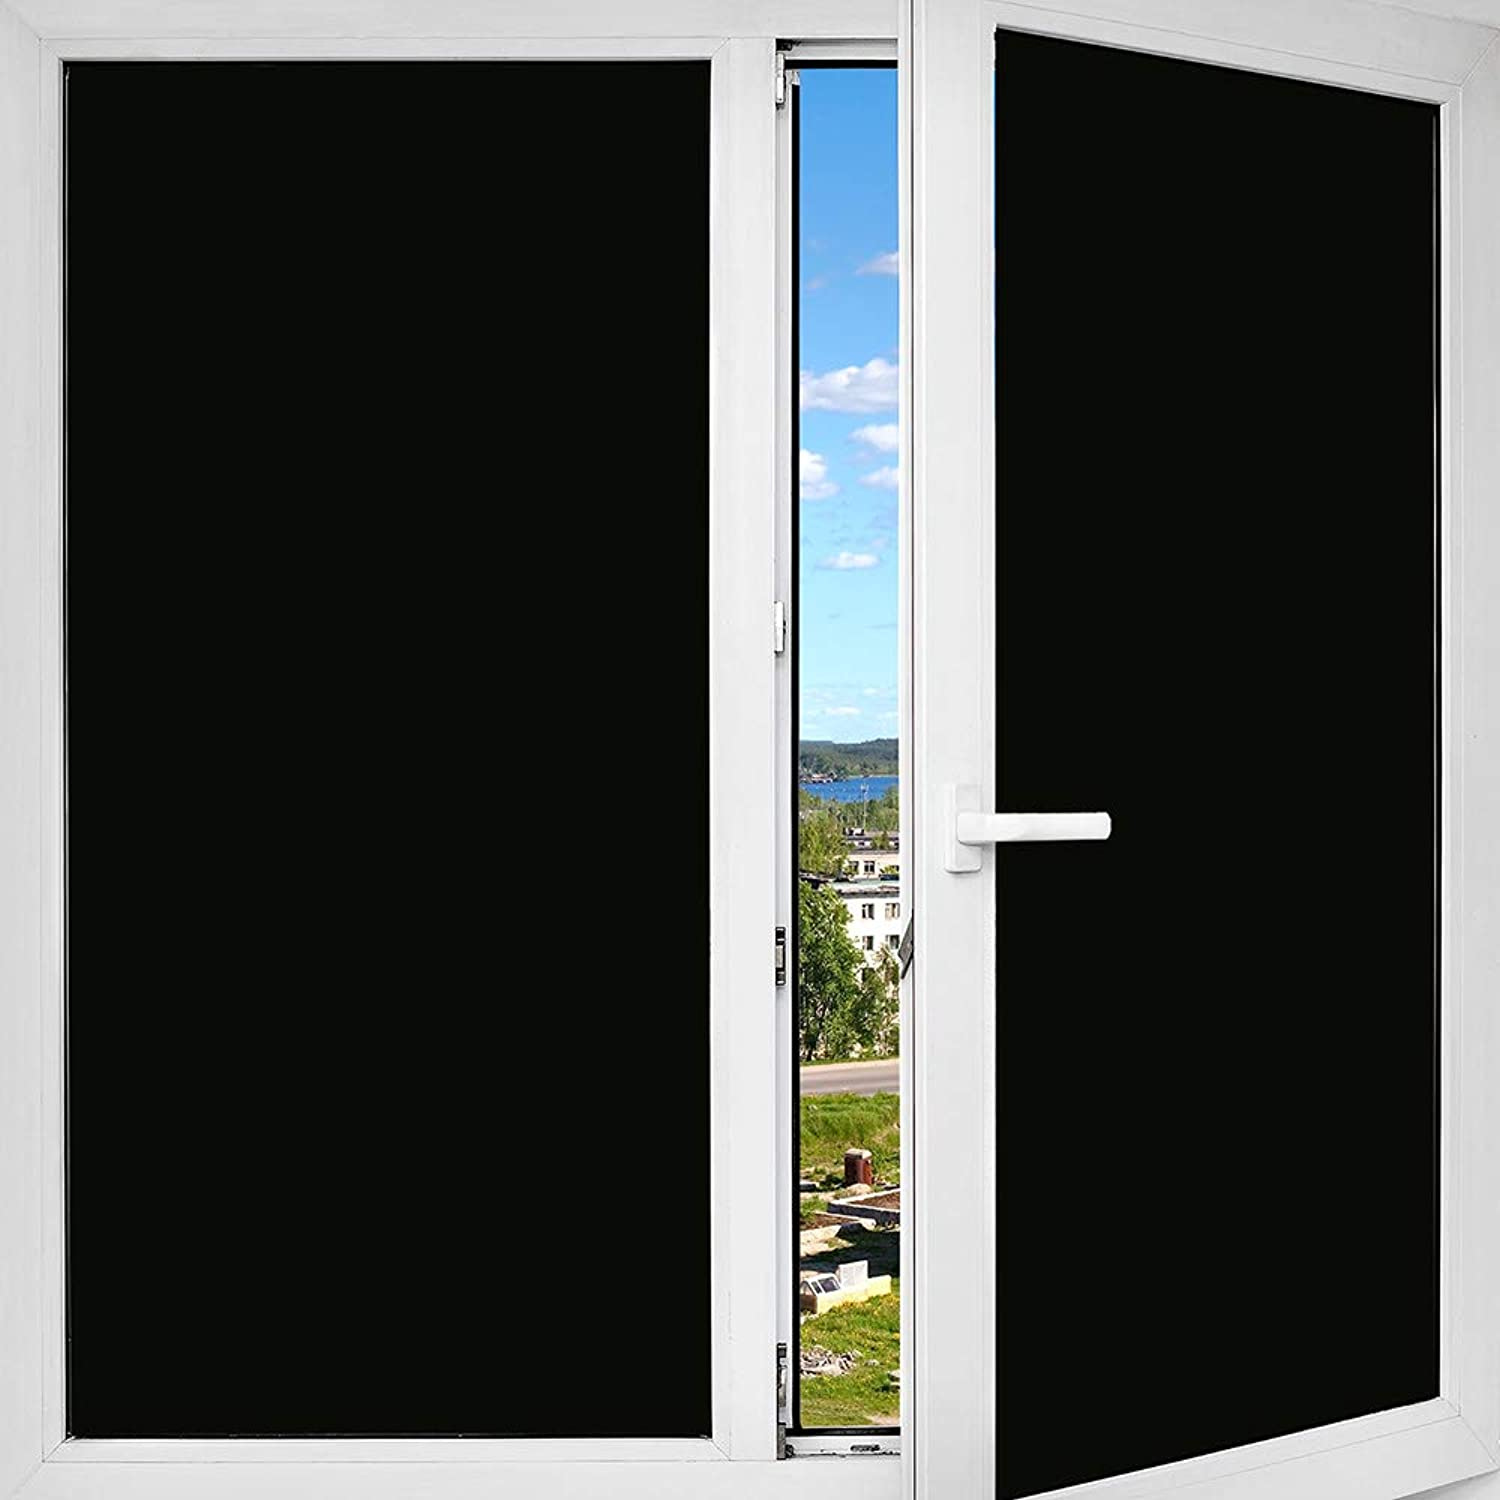 BDF 1BKOT Window Film Blackout (Non Adhesive Static Cling) 100% Light Blocking  Easy Inssizetion, Removal & No Residue  36in X 24ft